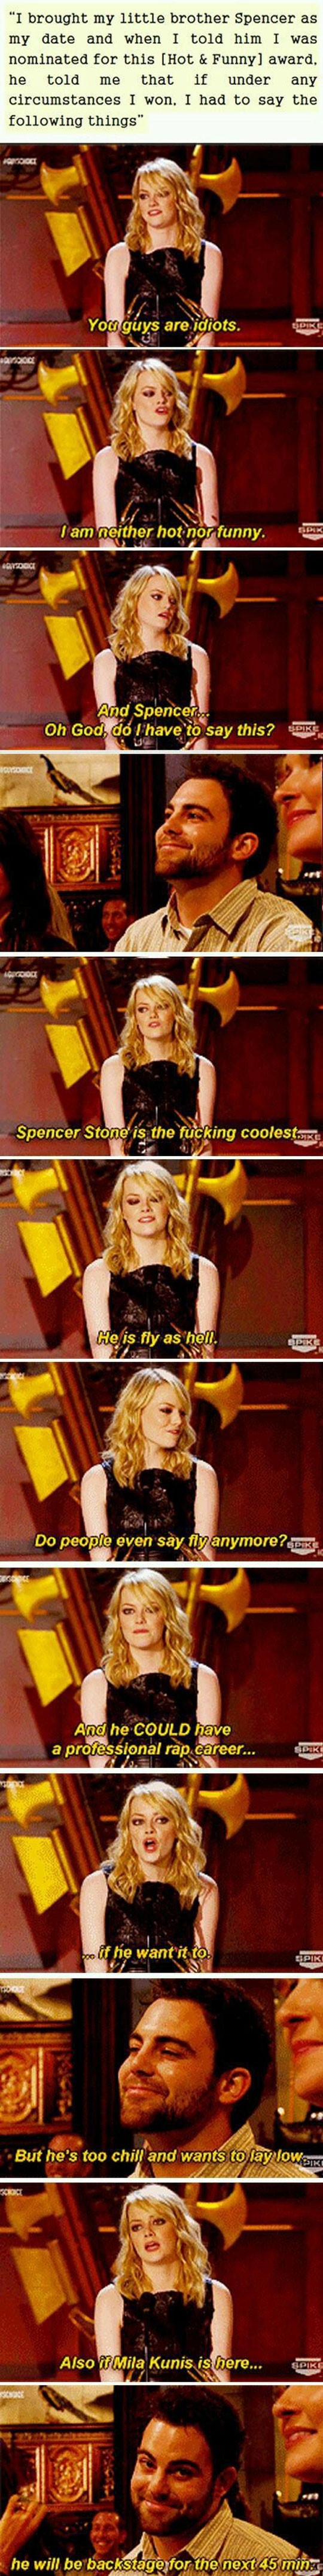 funny-Emma-Stone-award-ceremony-brother